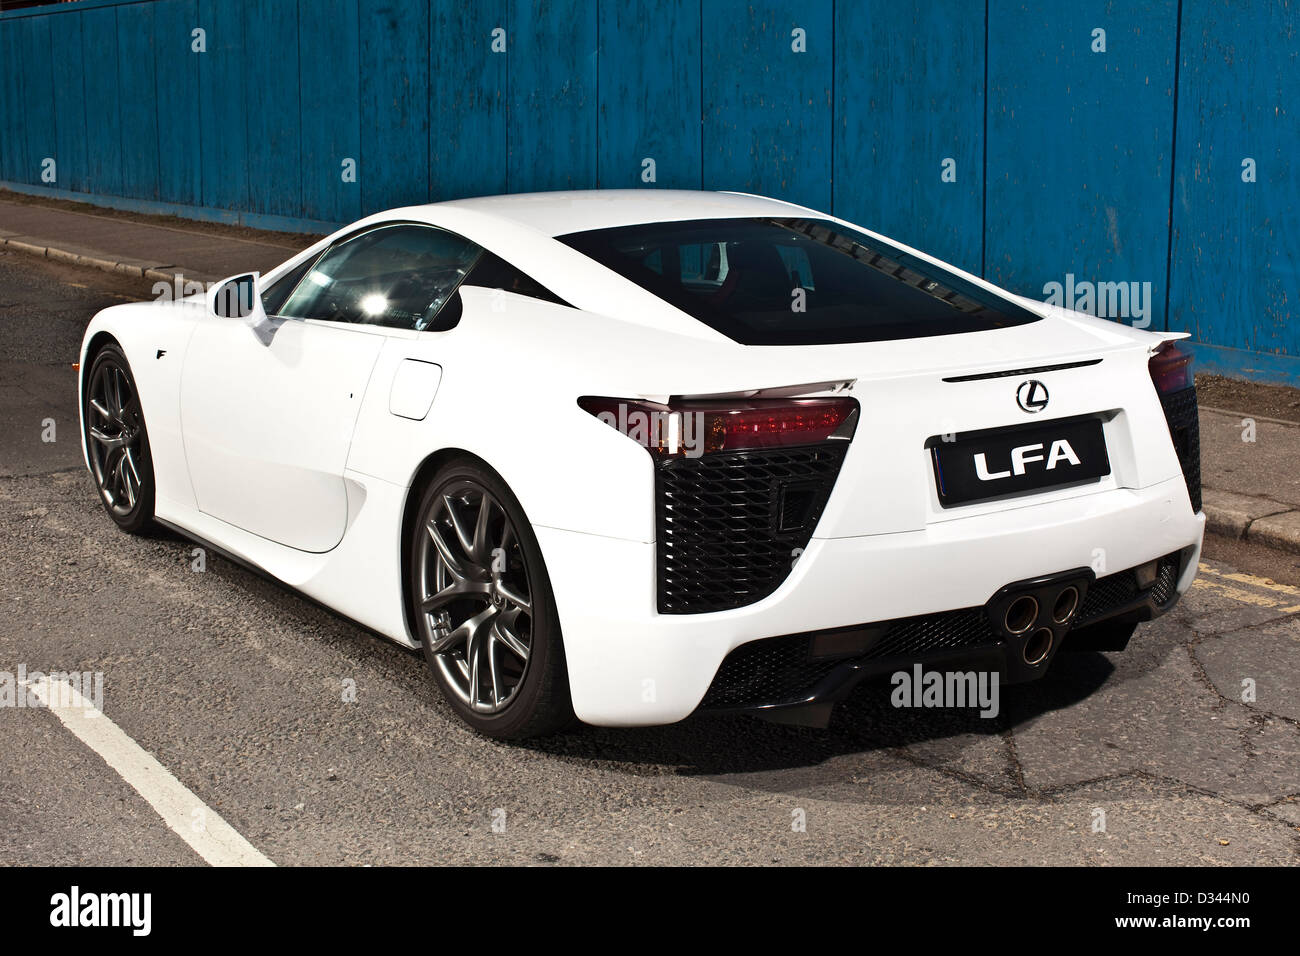 hybrid lexus lfa electric sports car london 21 03 2010 stock photo royalty free image. Black Bedroom Furniture Sets. Home Design Ideas